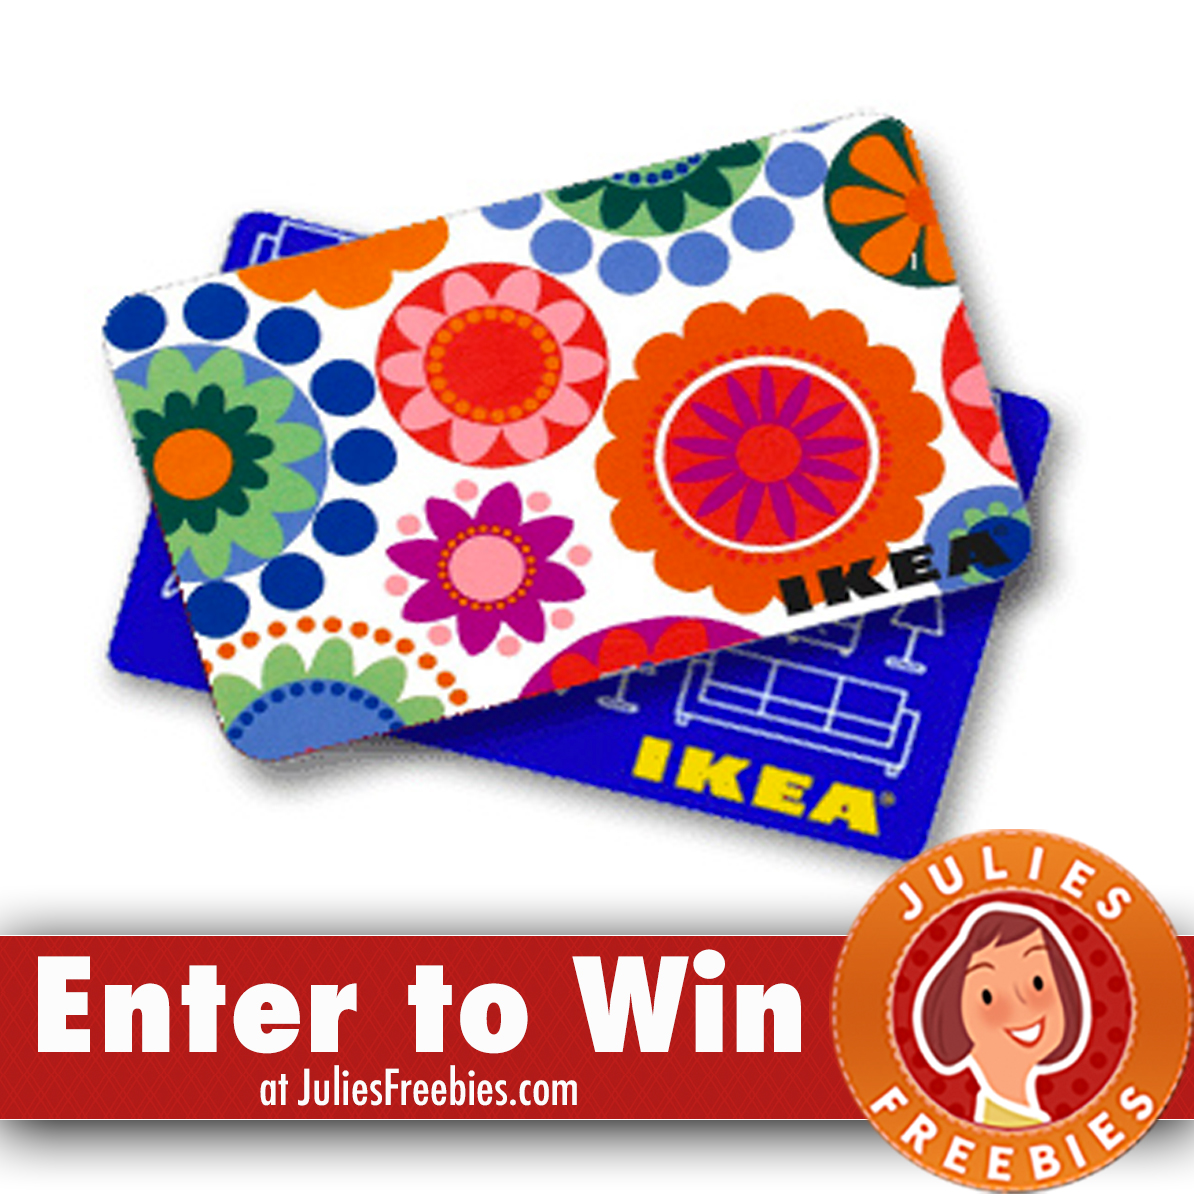 Marvellous Ikea Gift Card Ideas Best Image Engine 2articles